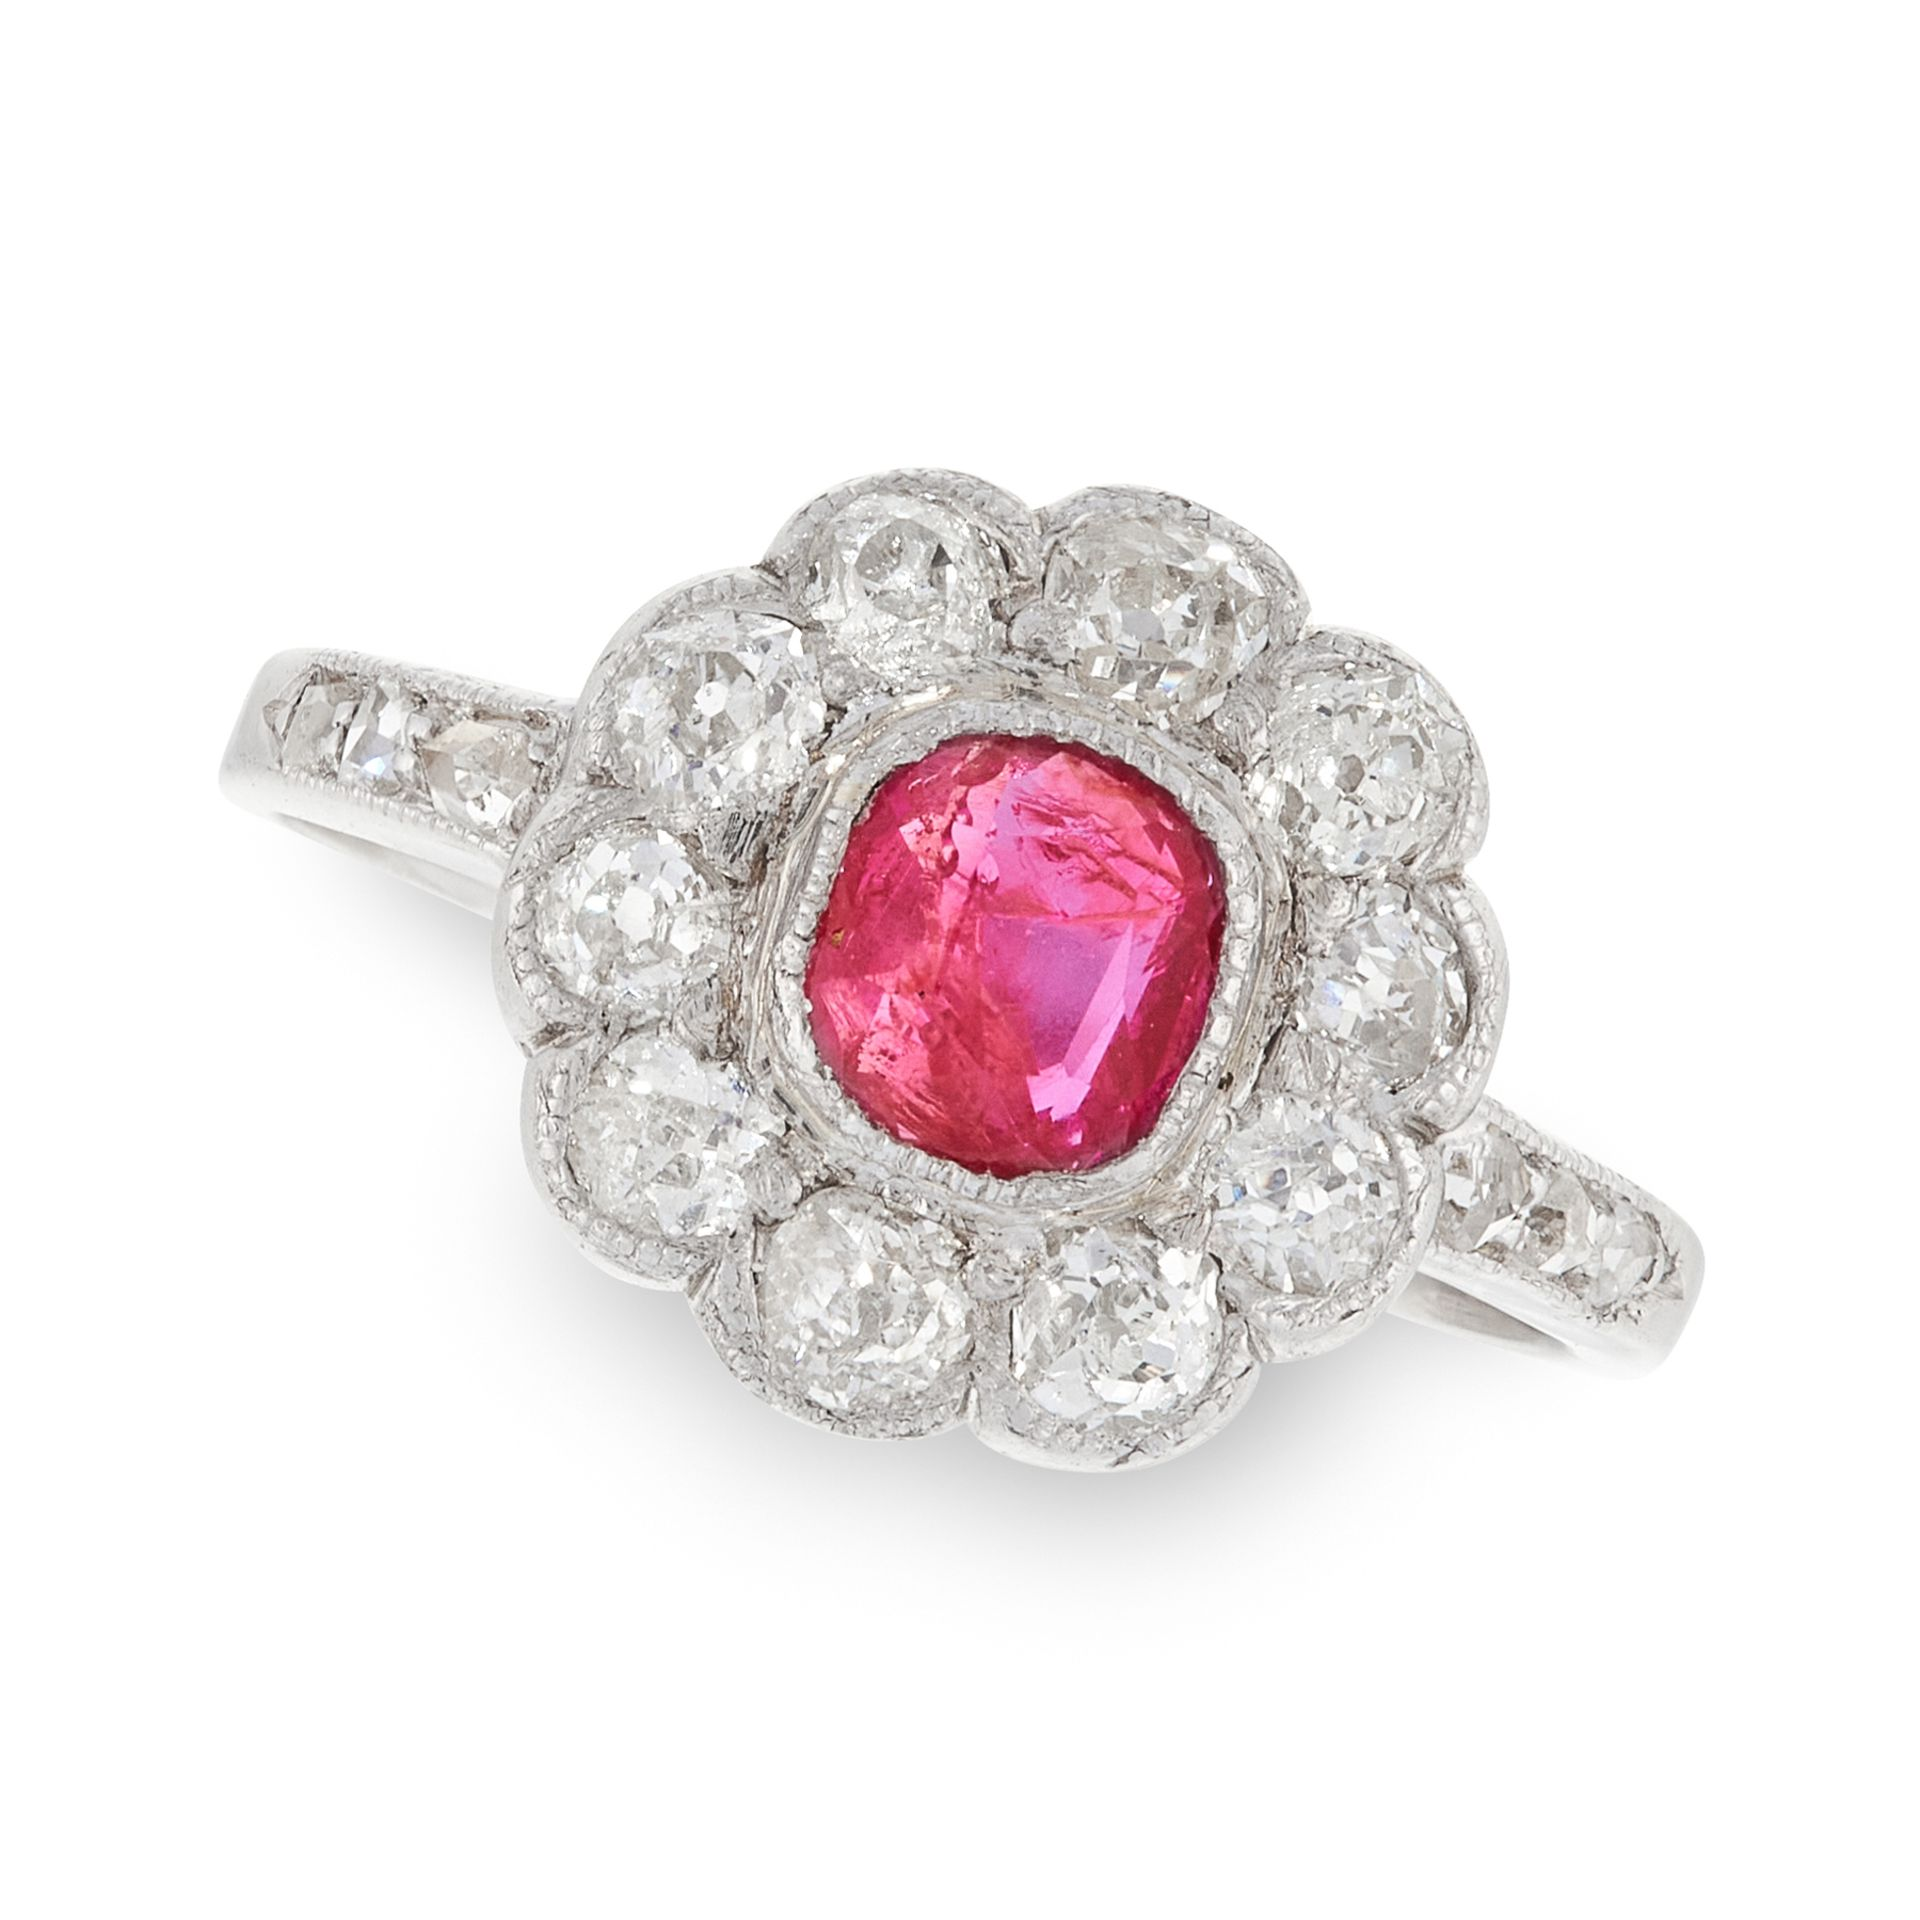 A RUBY AND DIAMOND CLUSTER RING in white gold or platinum, set with a cushion cut ruby of 0.55